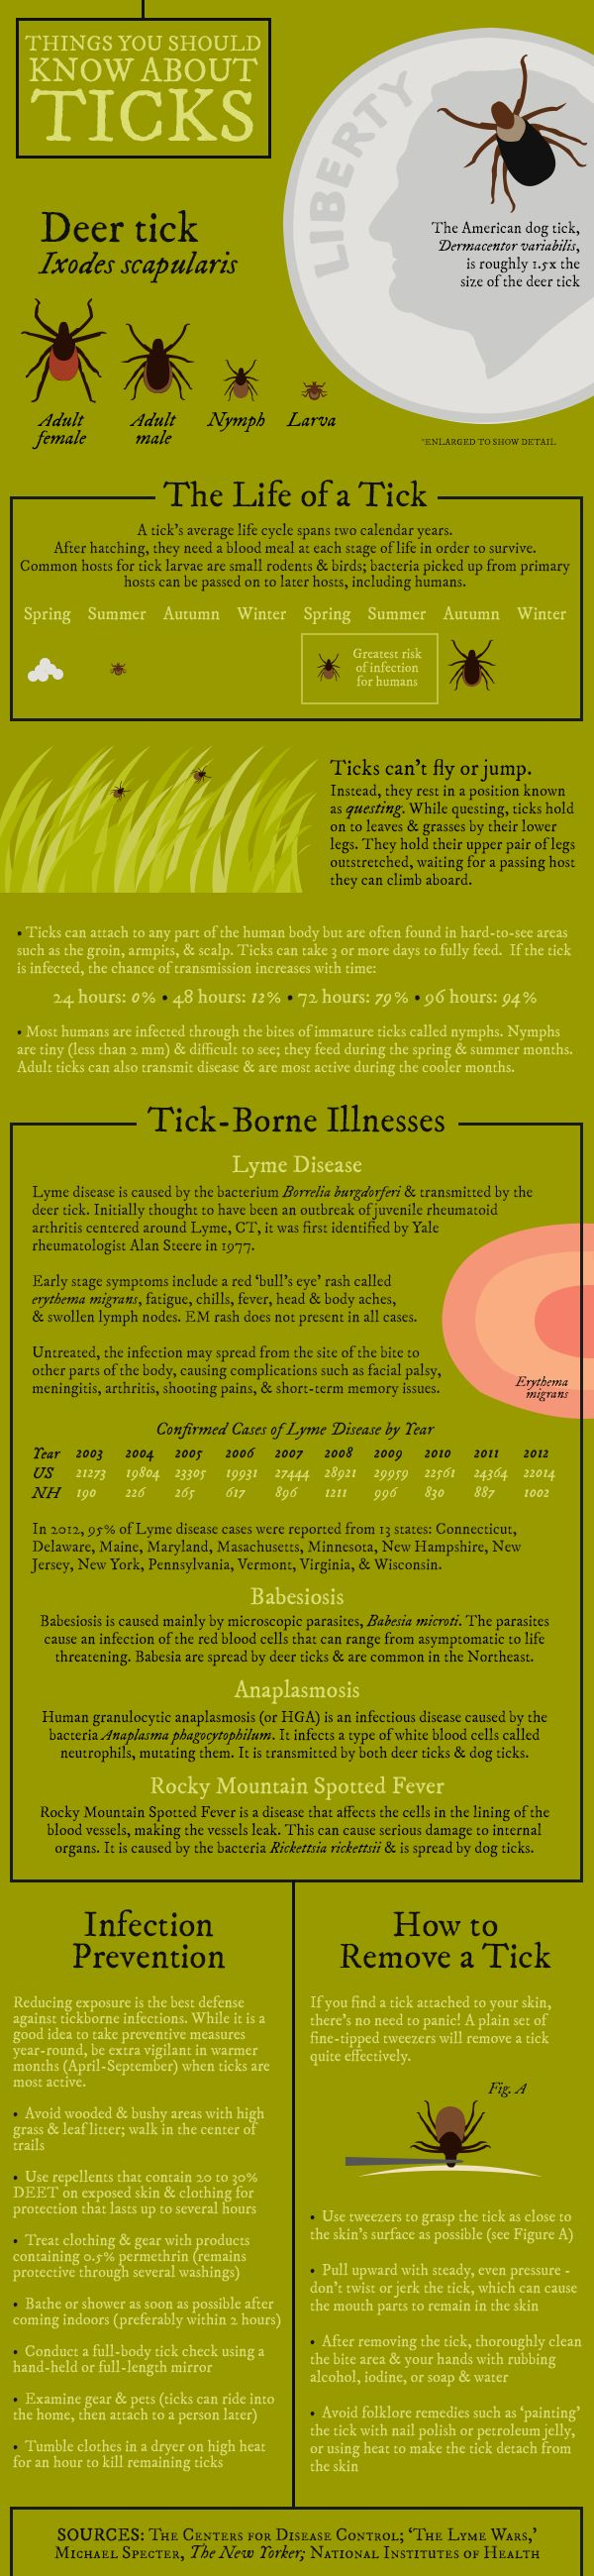 Things You Should Know About Ticks [Infographic] | New Hampshire Public Radio